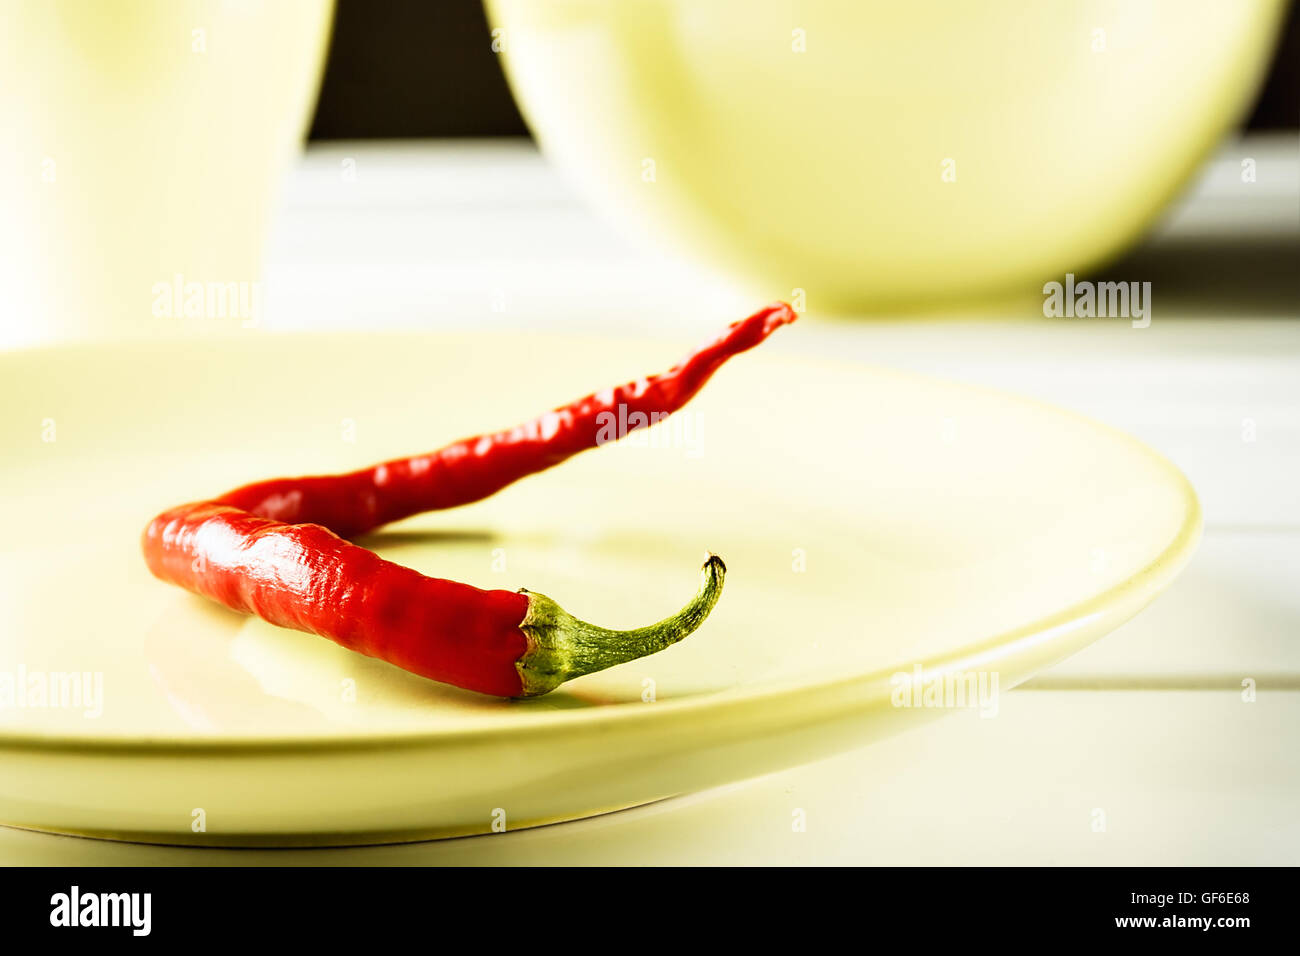 Red hot pepper on green dish over white wood. Horizontal image. - Stock Image